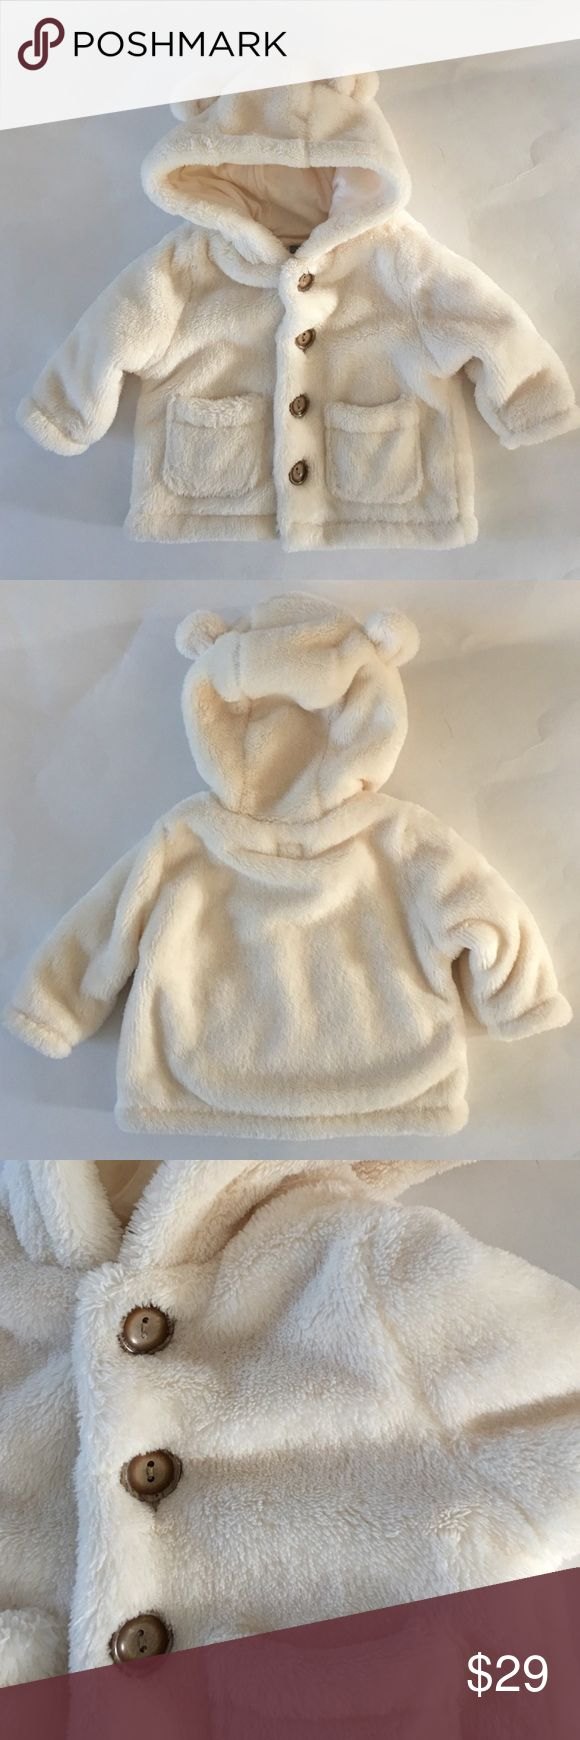 NWOT Baby Gap Jacket Nice and warm with super cute hood with little ears.  Fully lined in 100% cotton.  Feels like a furry fleece.  Really love but size was not the right season for us.  Never worn. GAP Jackets & Coats